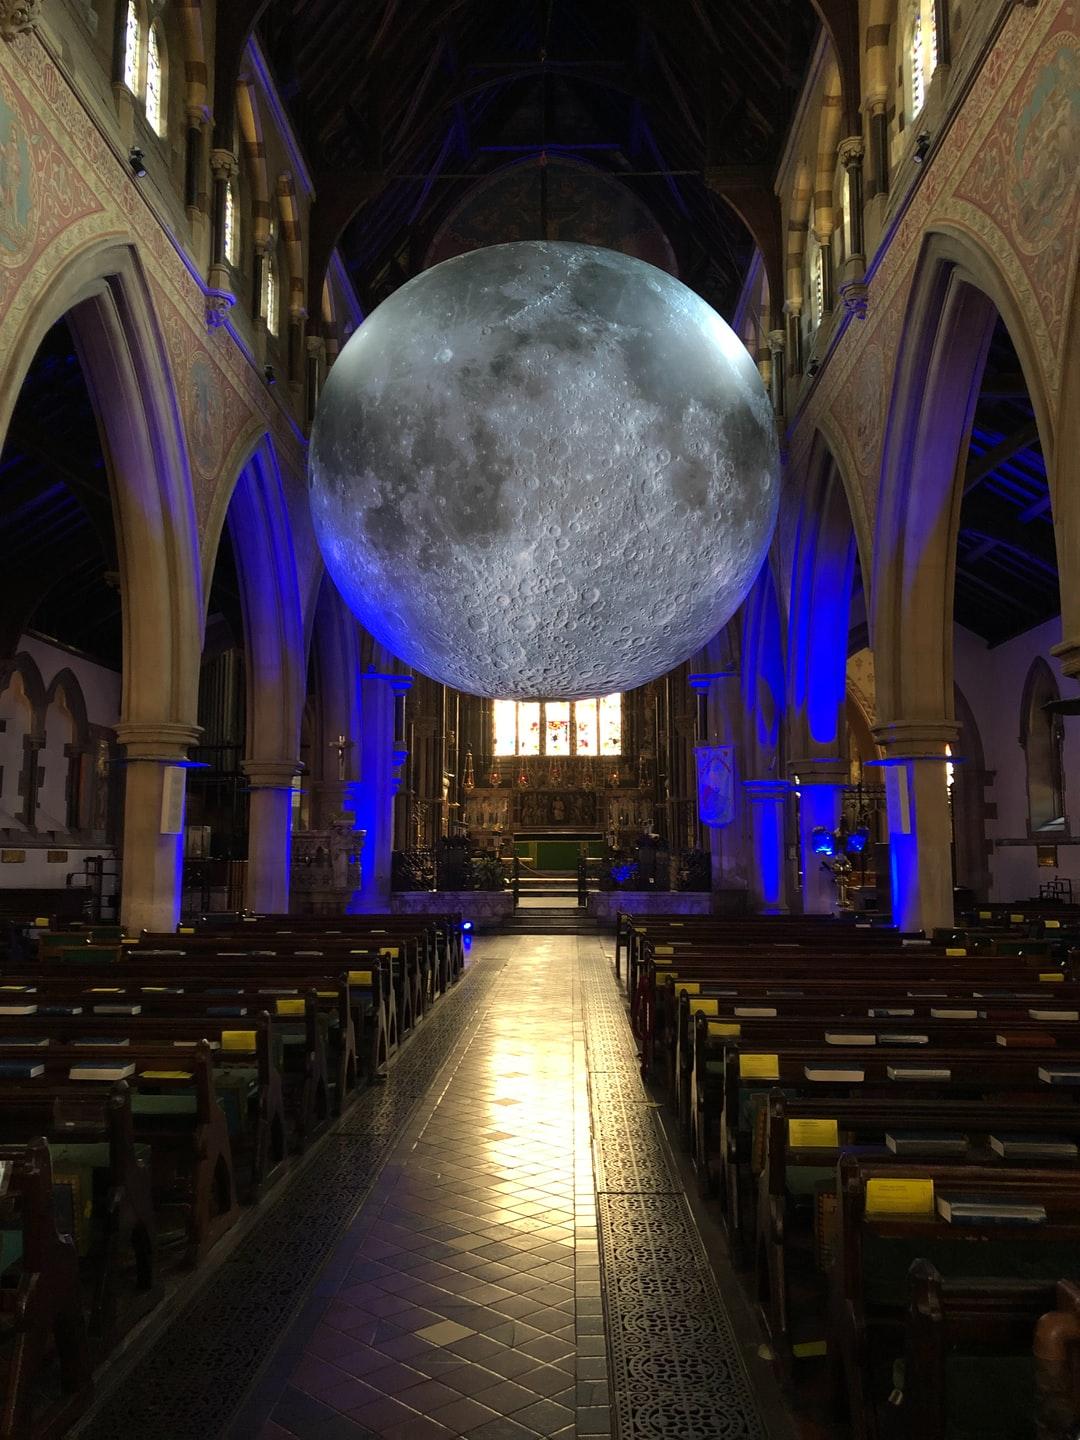 Museum of the Moon in Bournemouth.  The huge moon placed in St. Peter's Church Bournemouth. To mark and commemorate mans landing on the Moon 50 years ago. Absolutely fascinating.